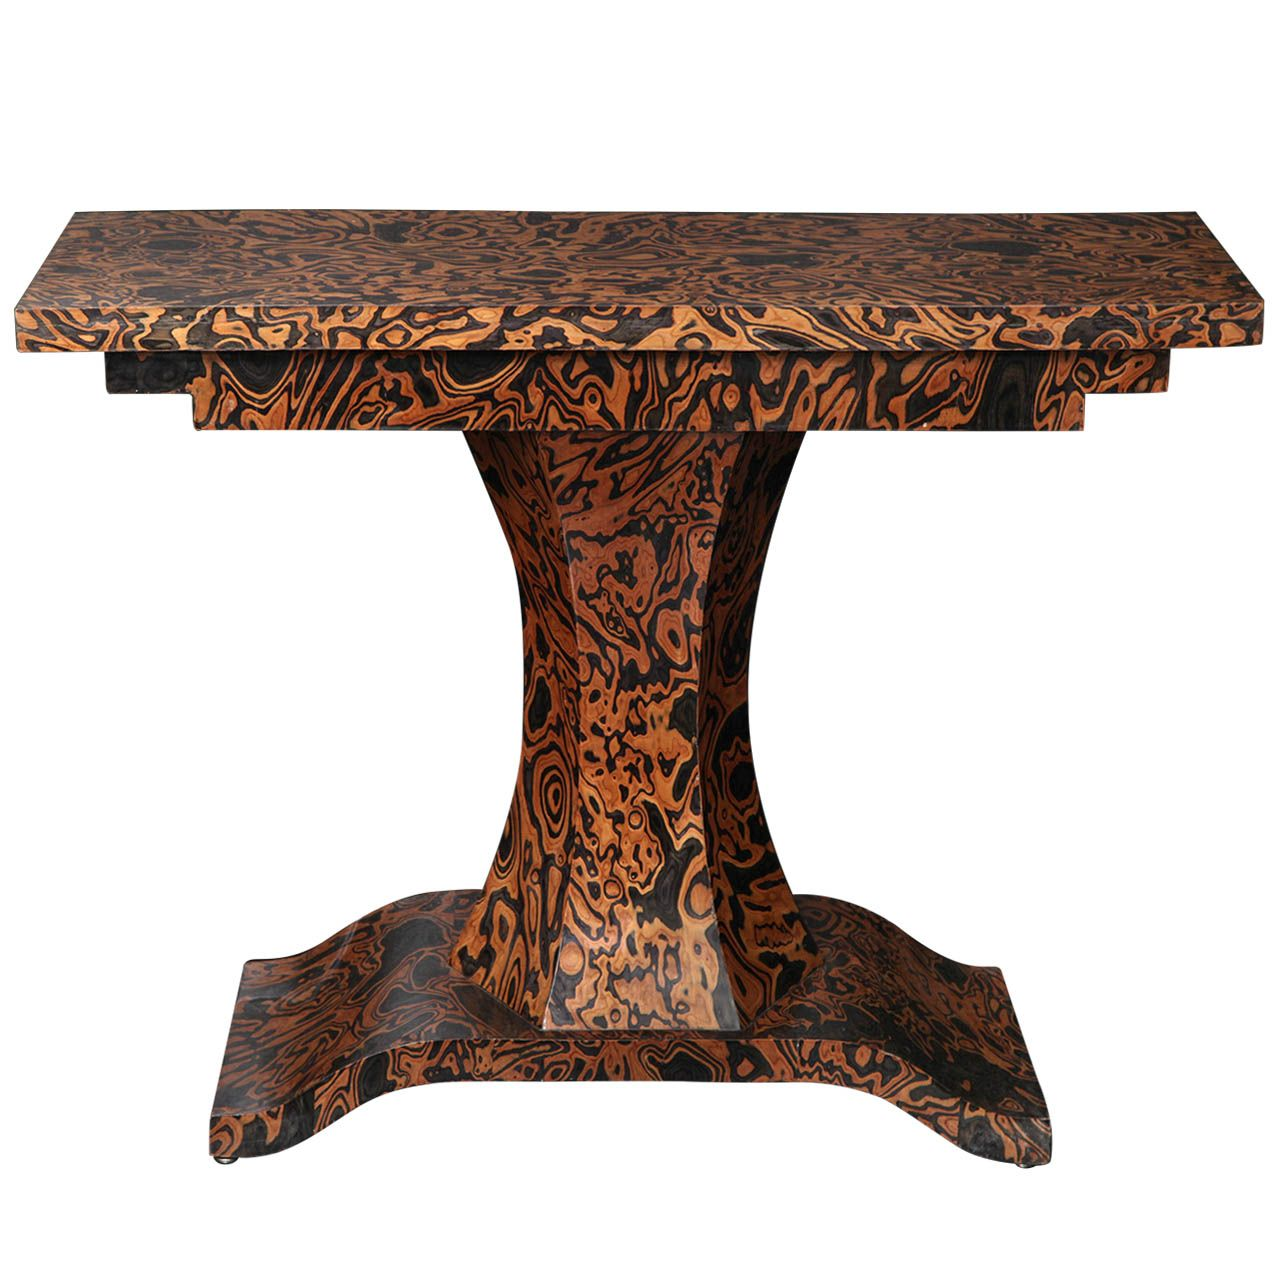 Th century zebra wood console from a unique collection of